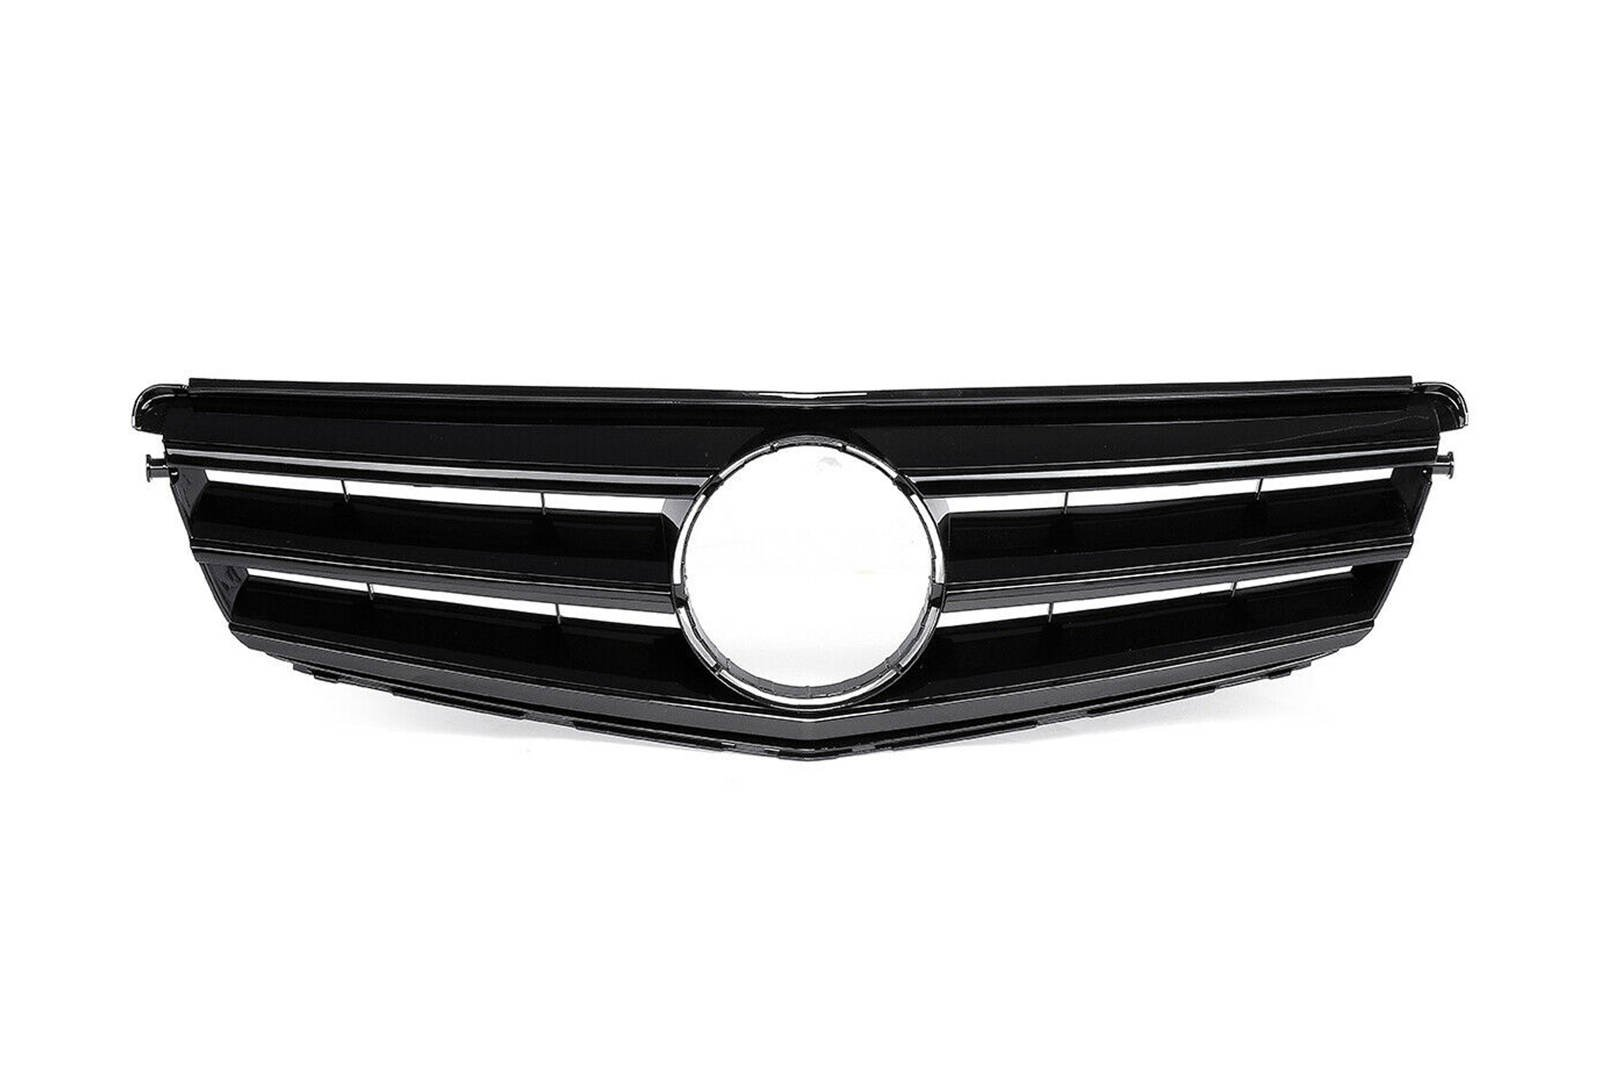 GTR Style Front Radiator Grille for Mercedes C-Class W204 Gloss Black